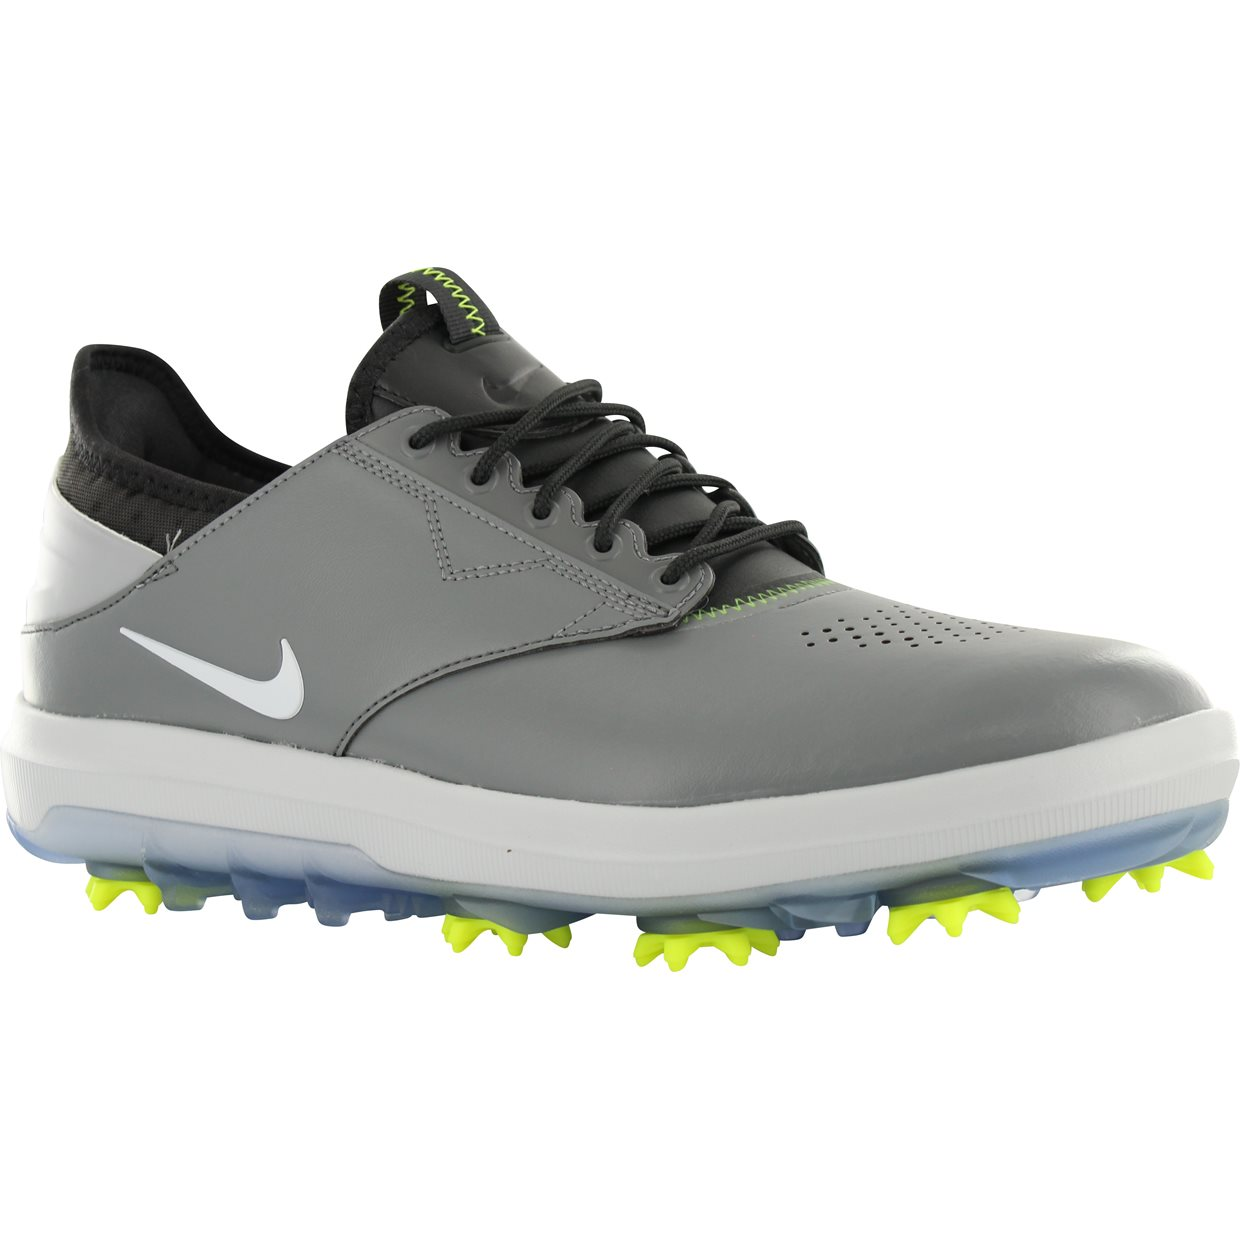 b41dcc34162 Nike Air Zoom Direct Golf Shoe Shoes. Drag 360 Left or Right to View.  Alternate Product Image View 1 ...